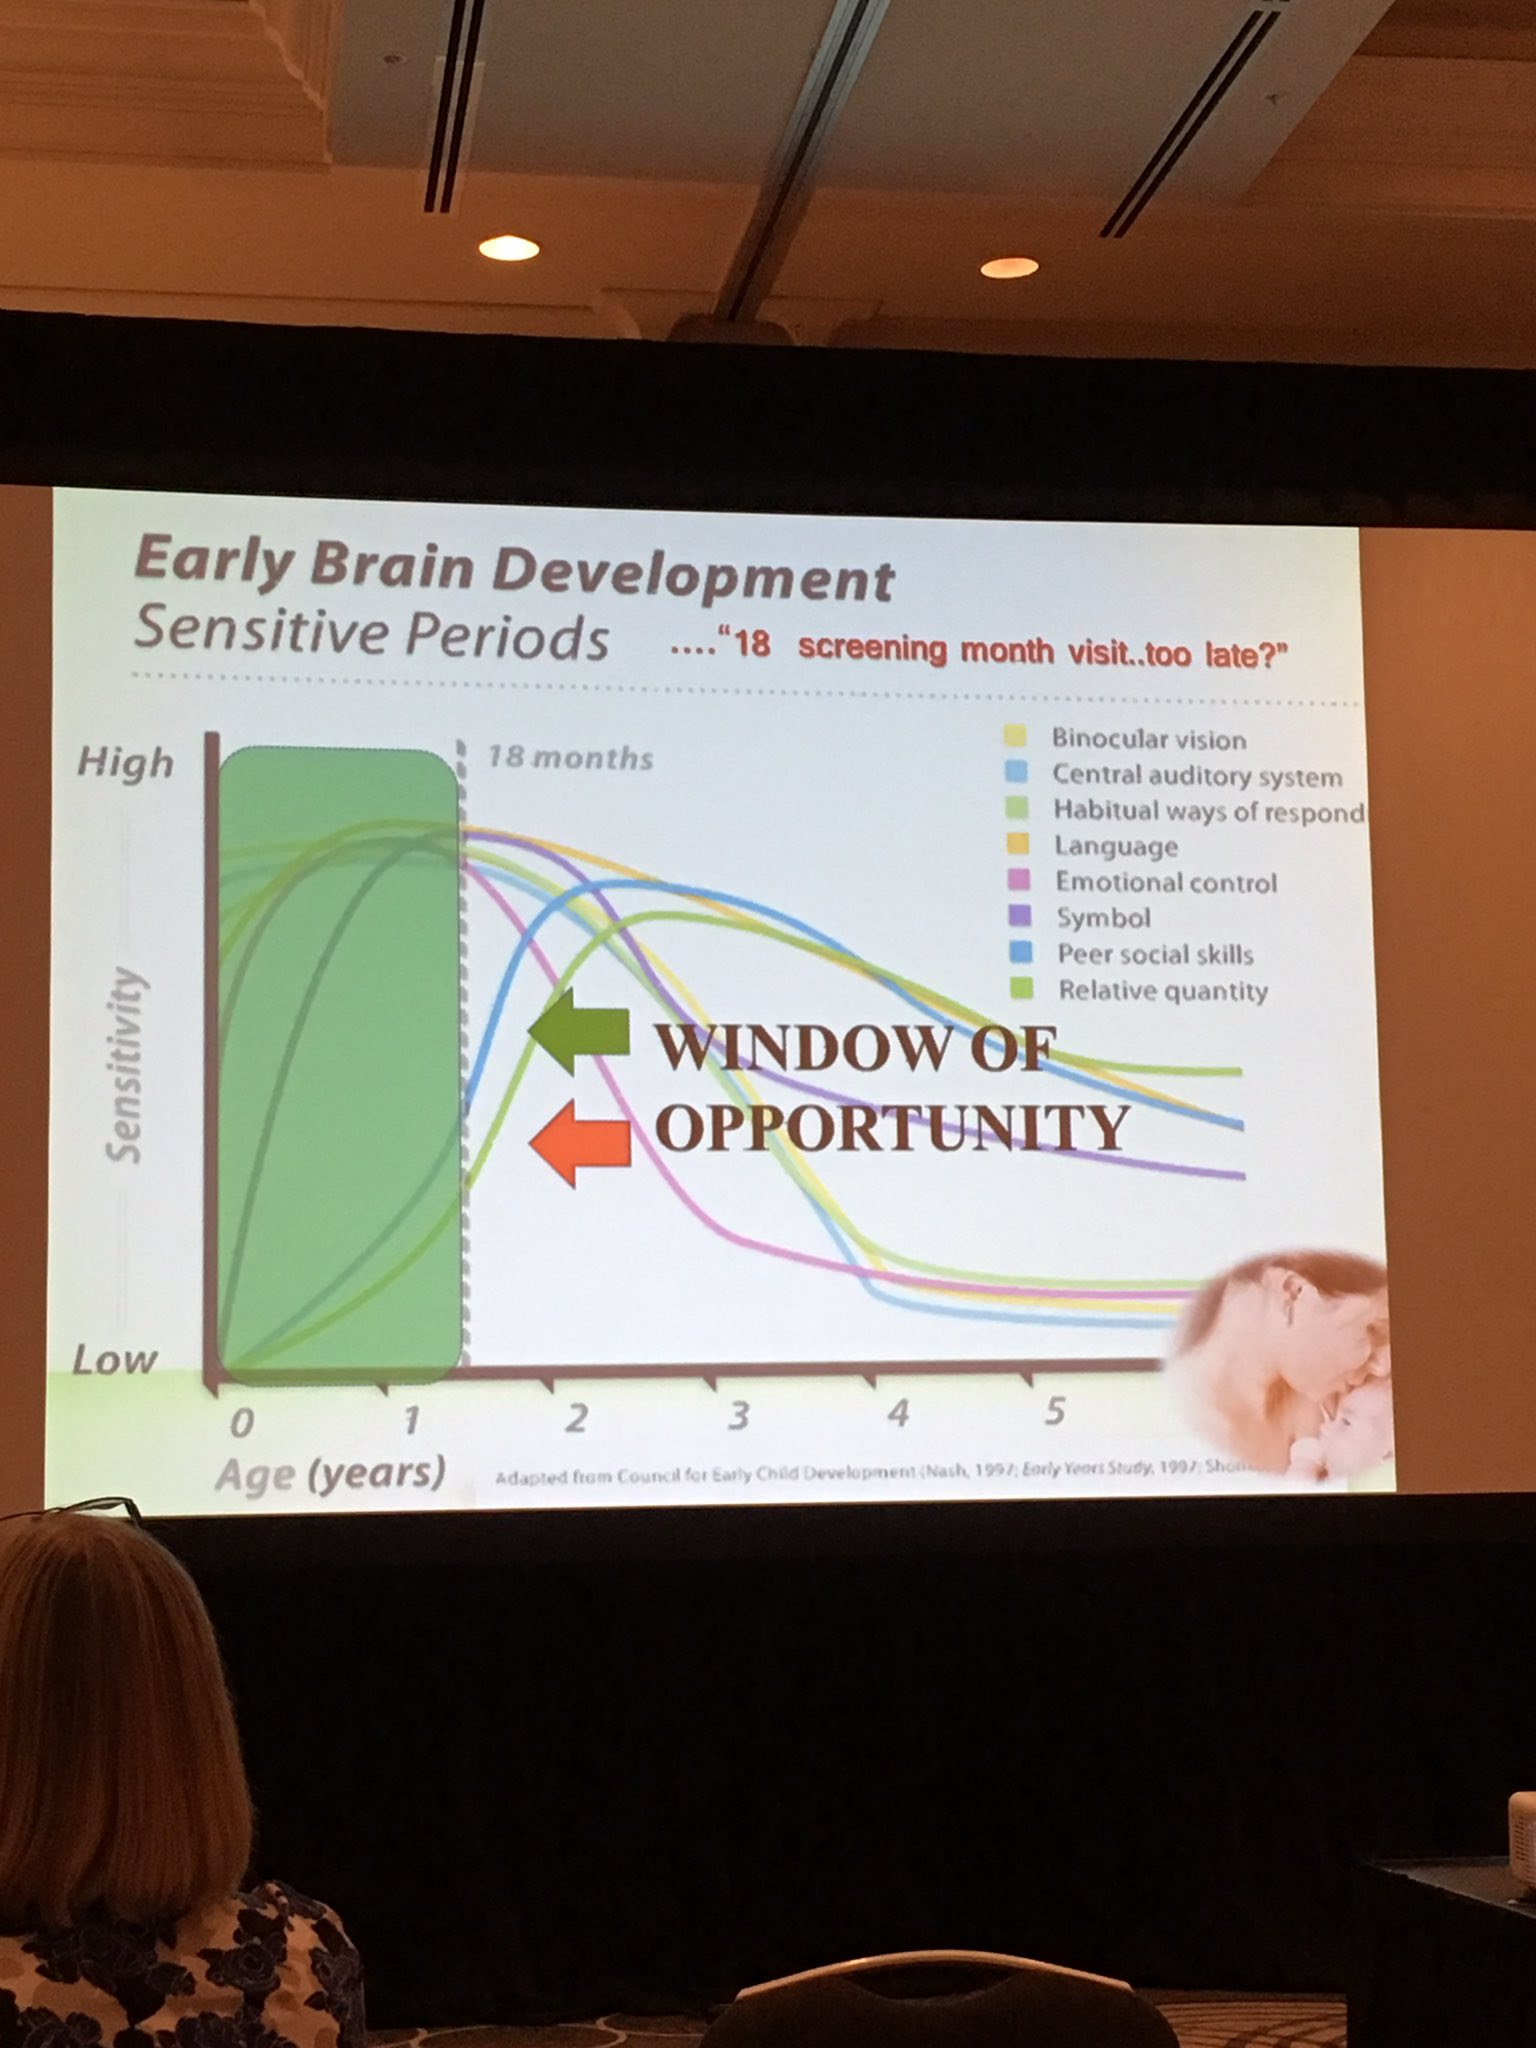 Window of opportunity for children. Play, sing, talk with your child. #bsrc2017 https://t.co/IuT5MieB6o